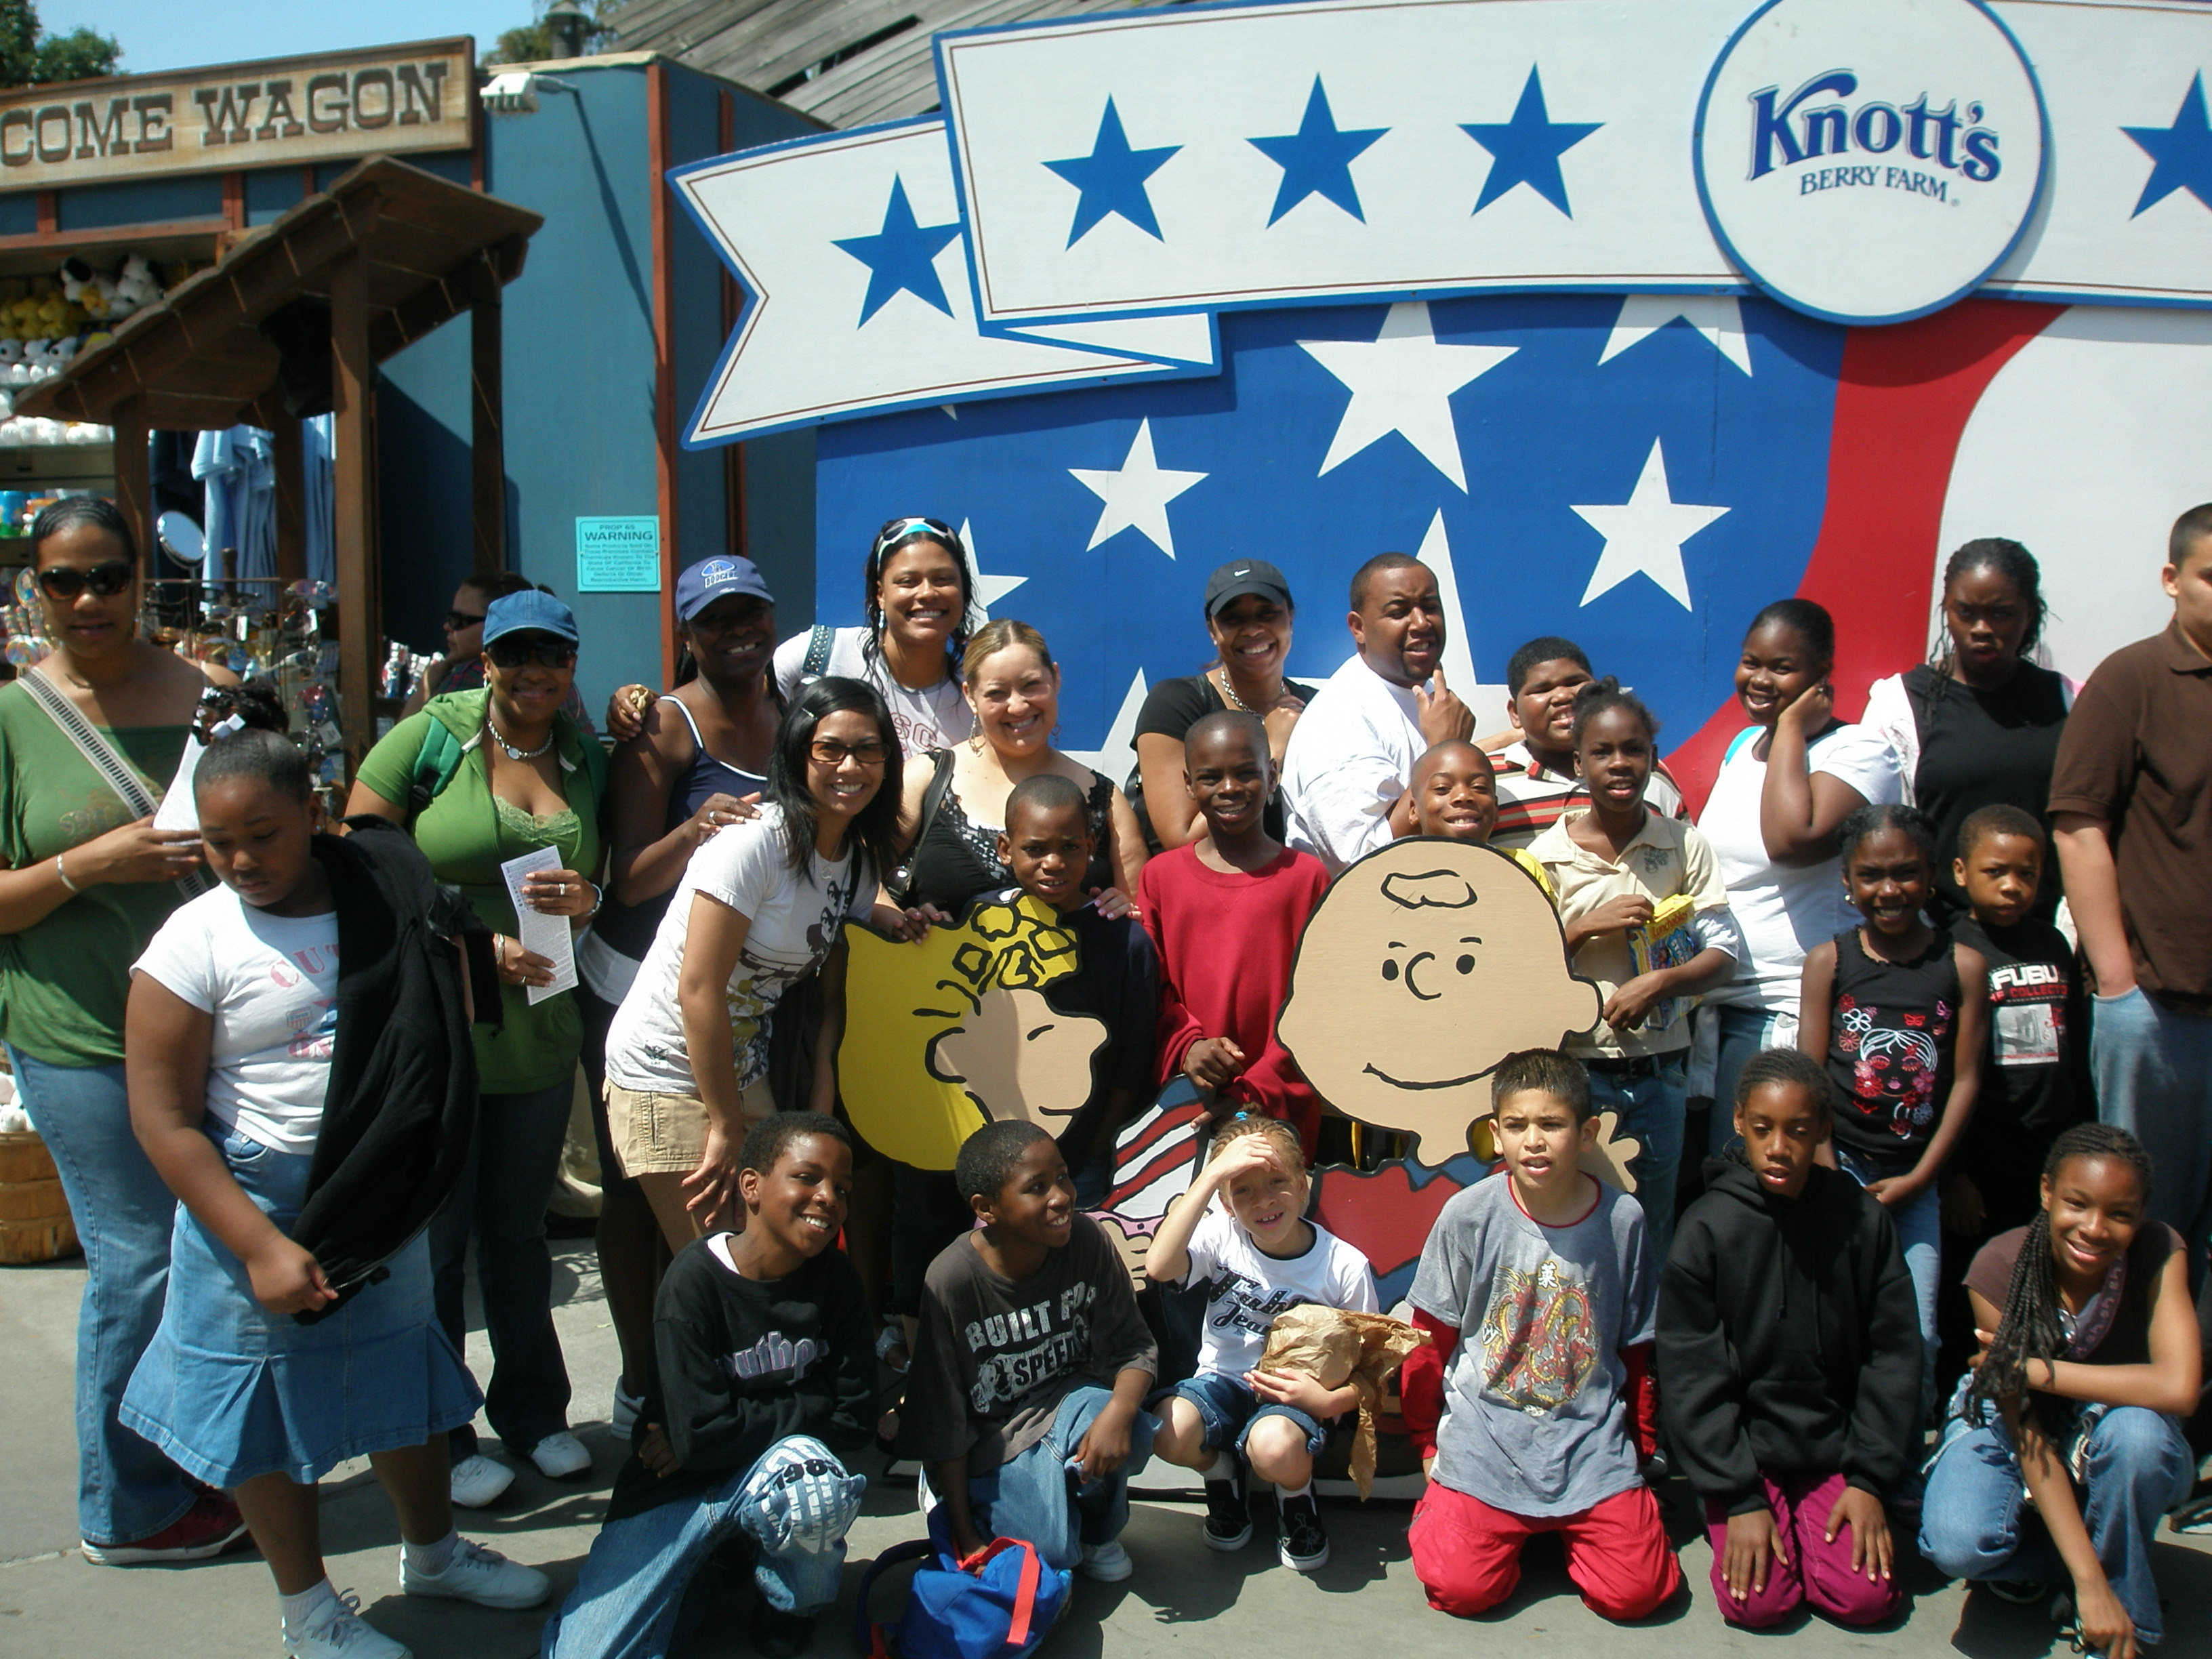 CLIENTS AT KNOTTS